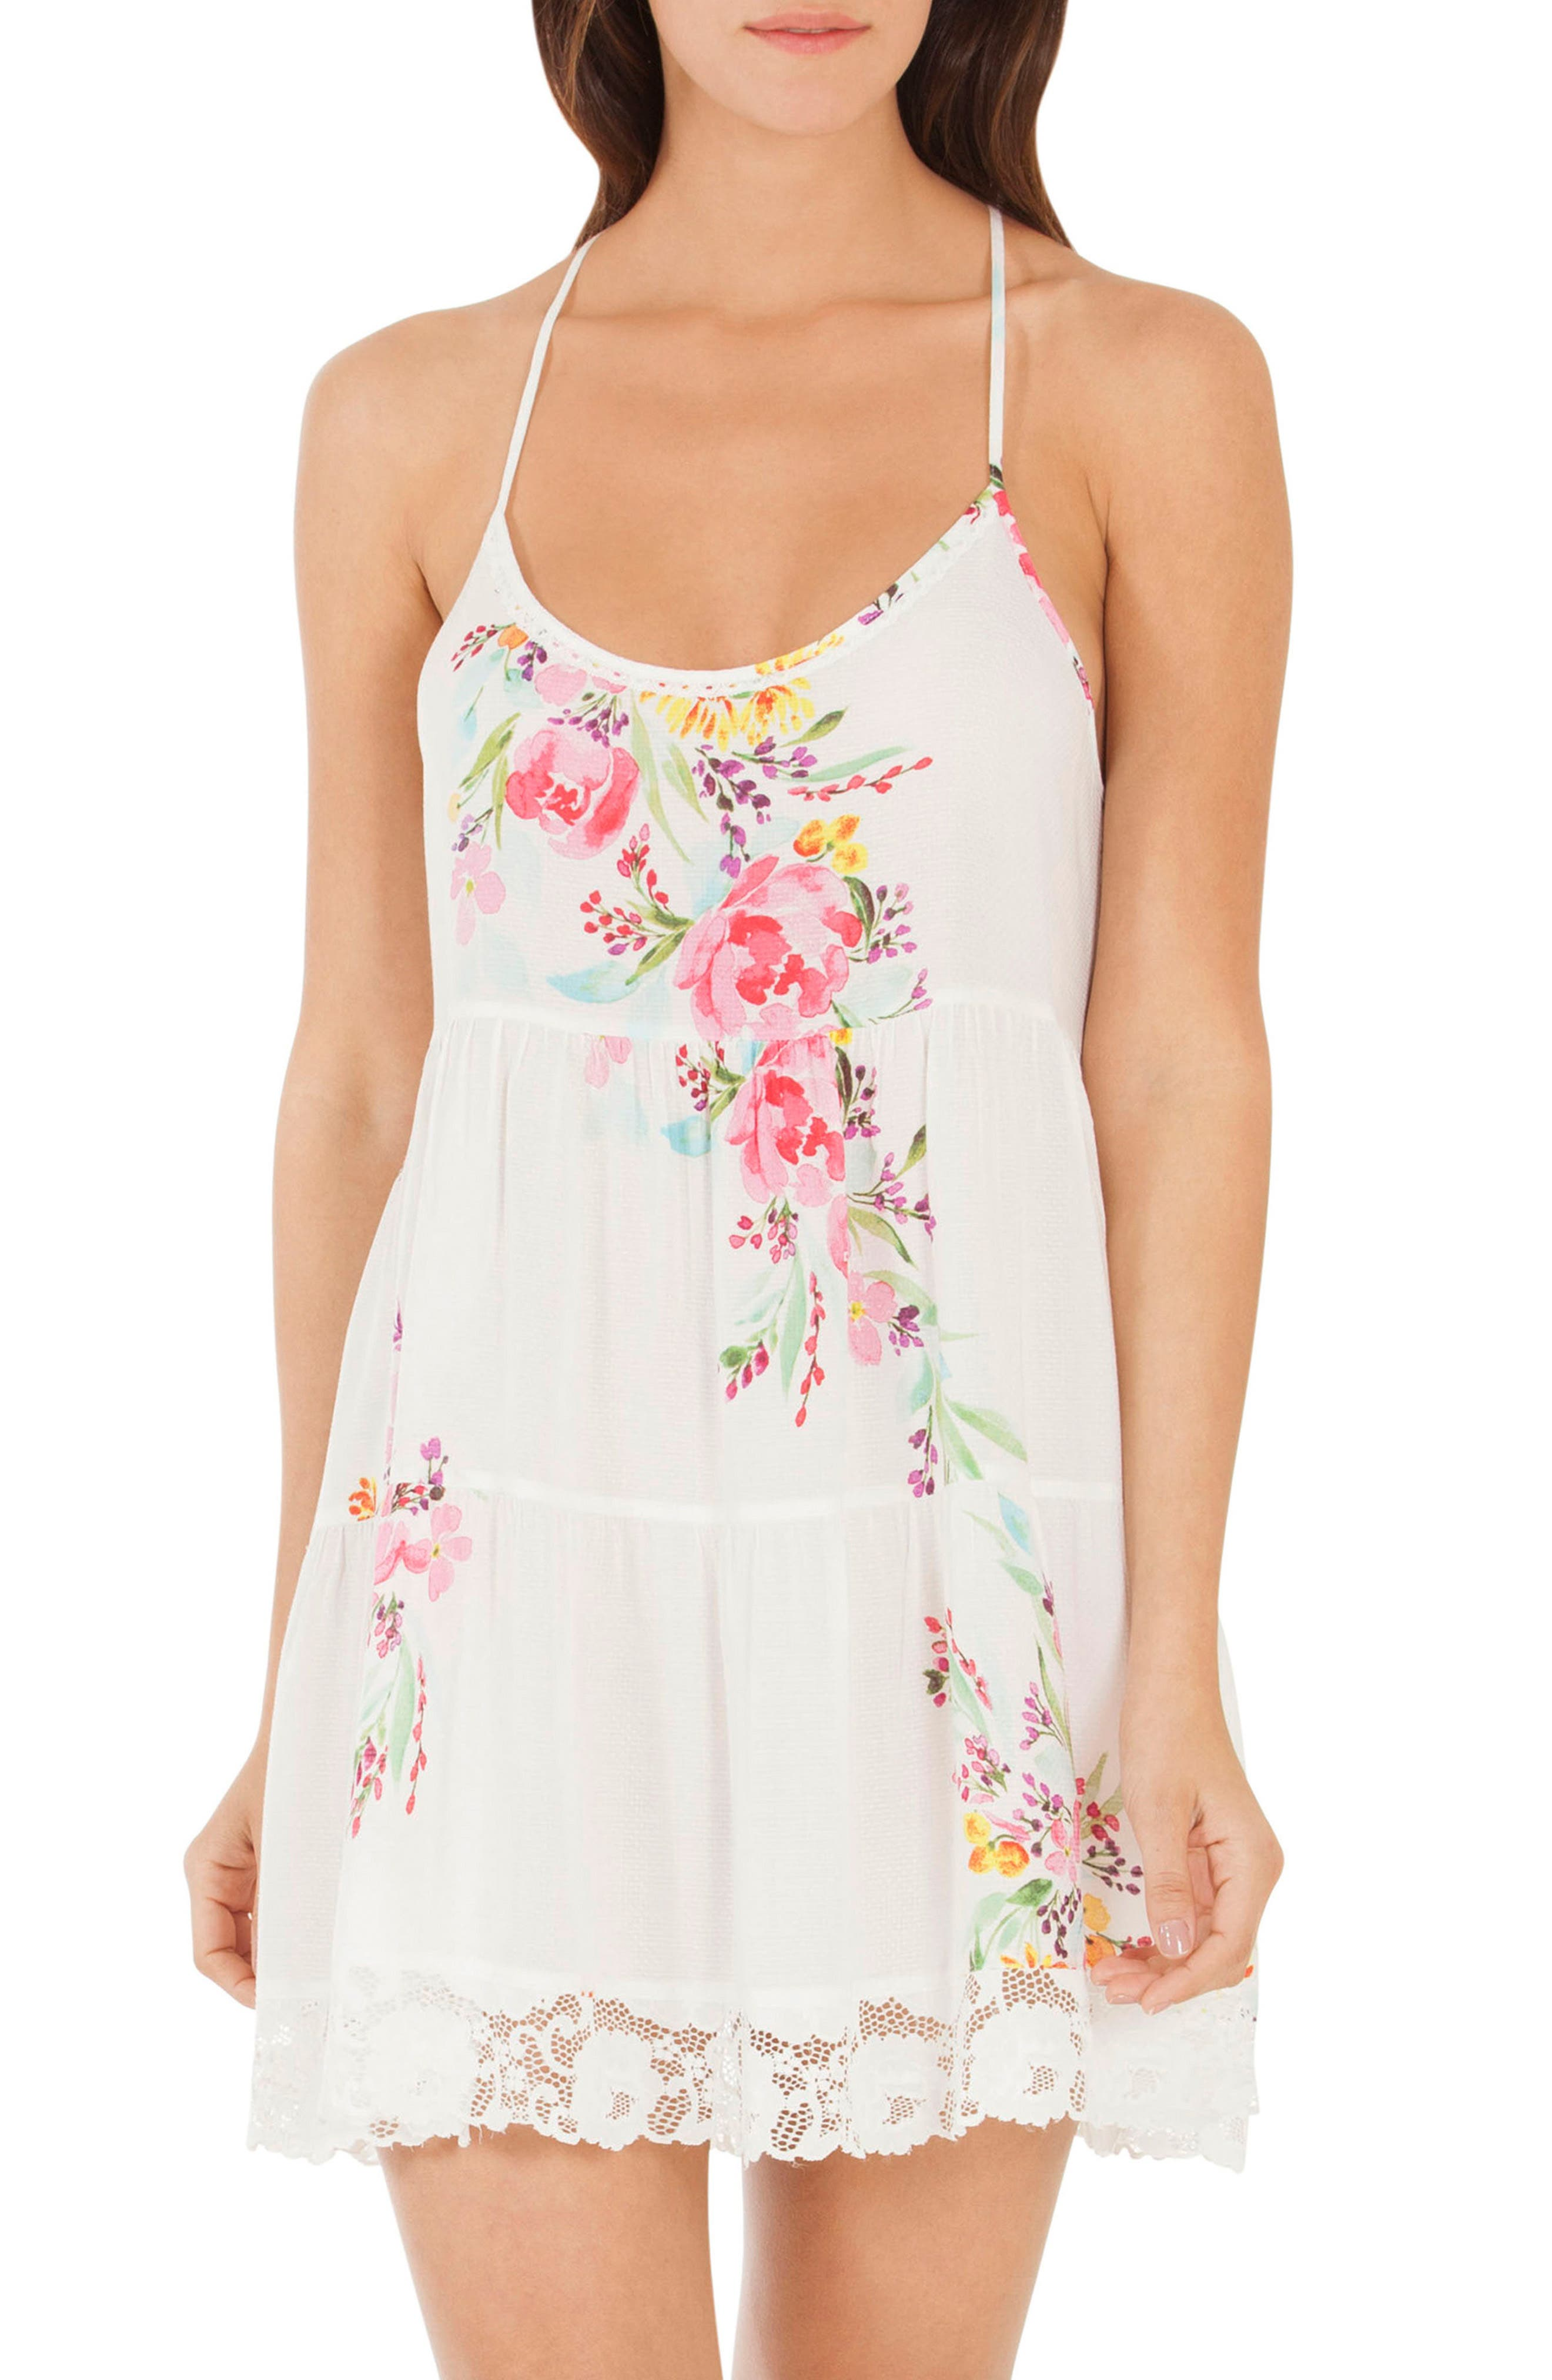 In Bloom by Jonquil Lace Chemise